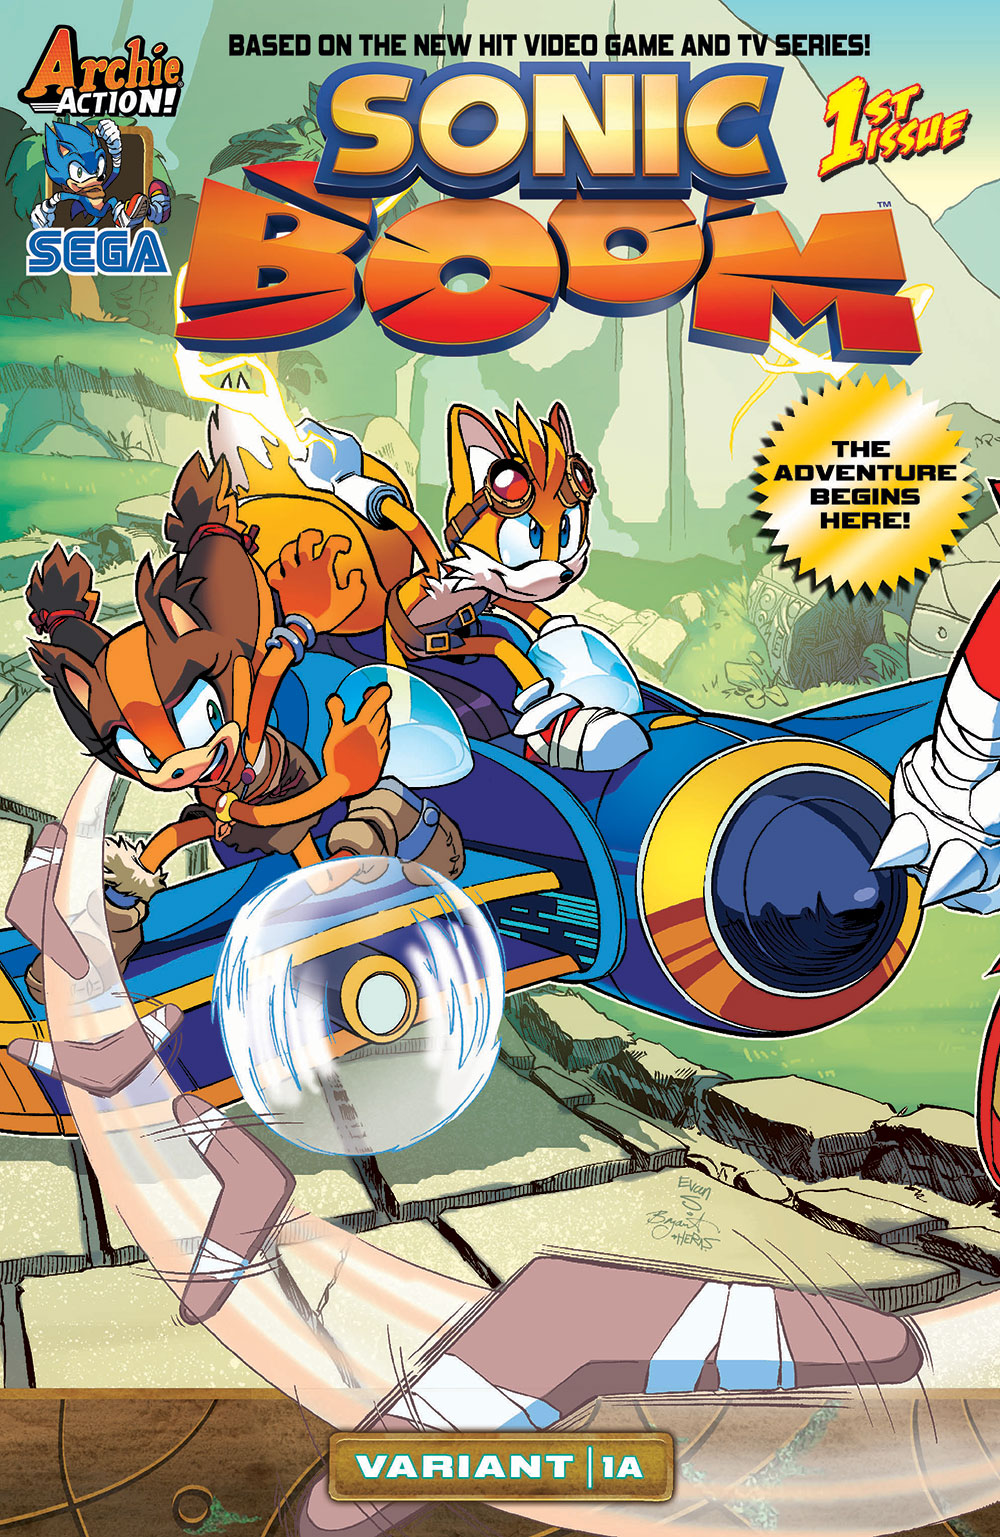 Archie Sonic Boom Issue 1 Sonic